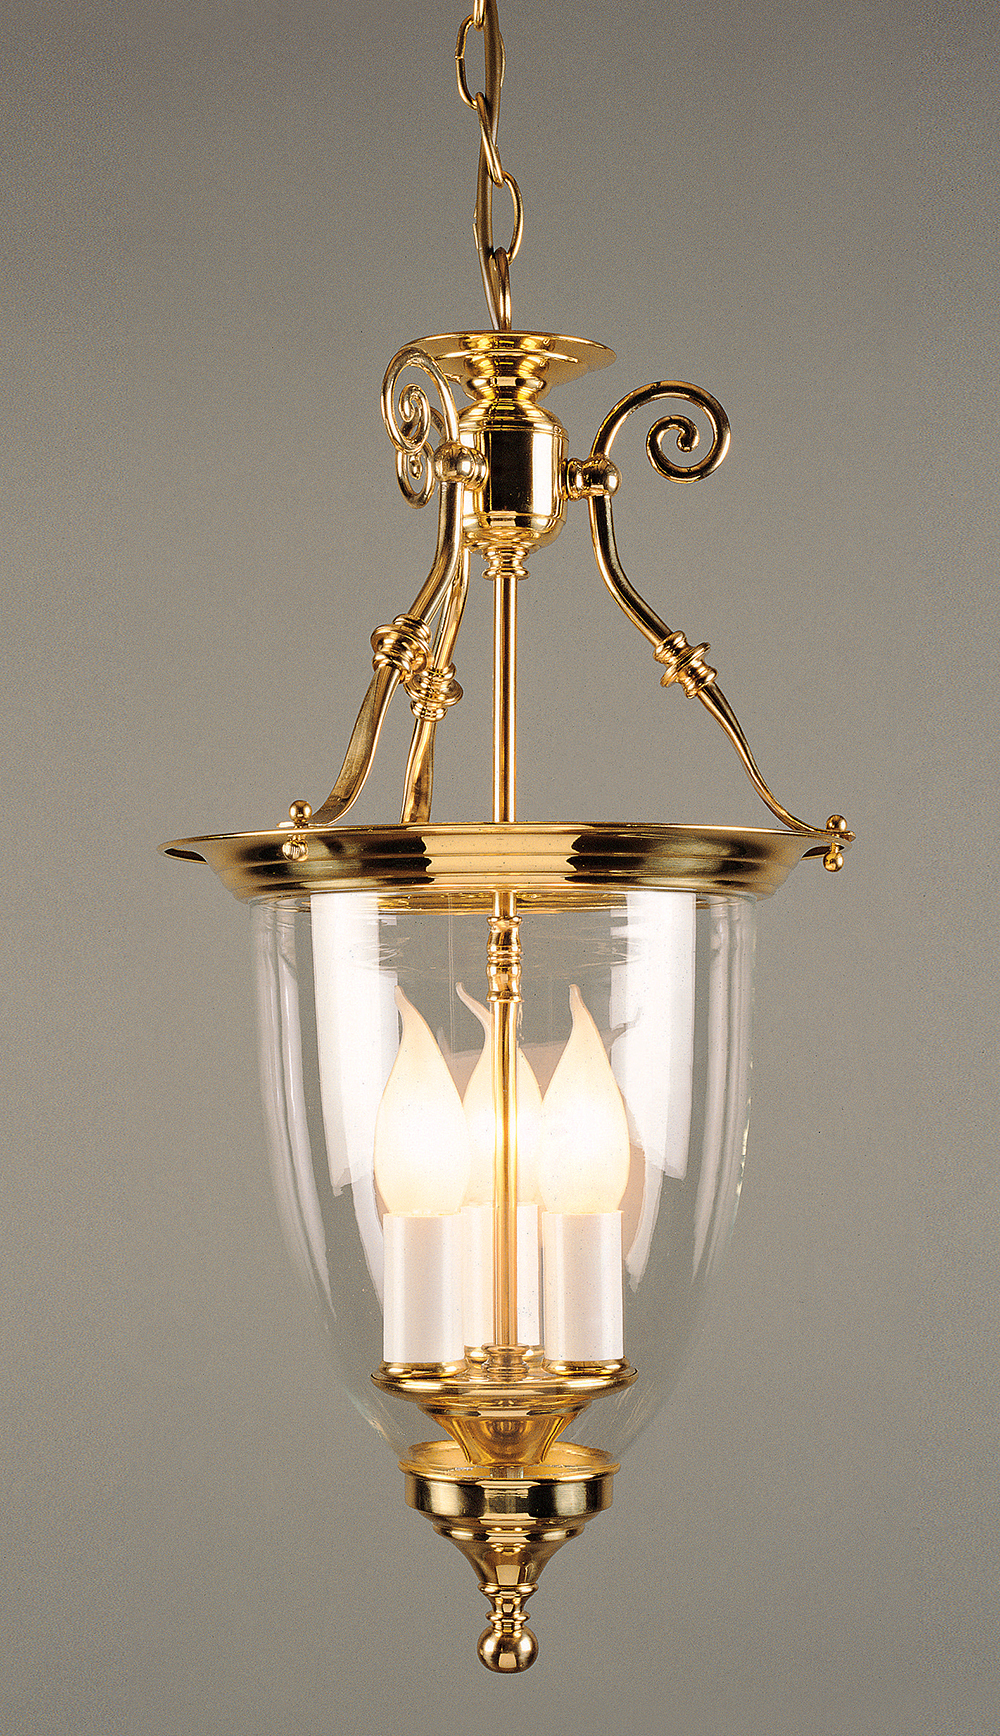 BILBAO POLISHED BRASS LANTERN